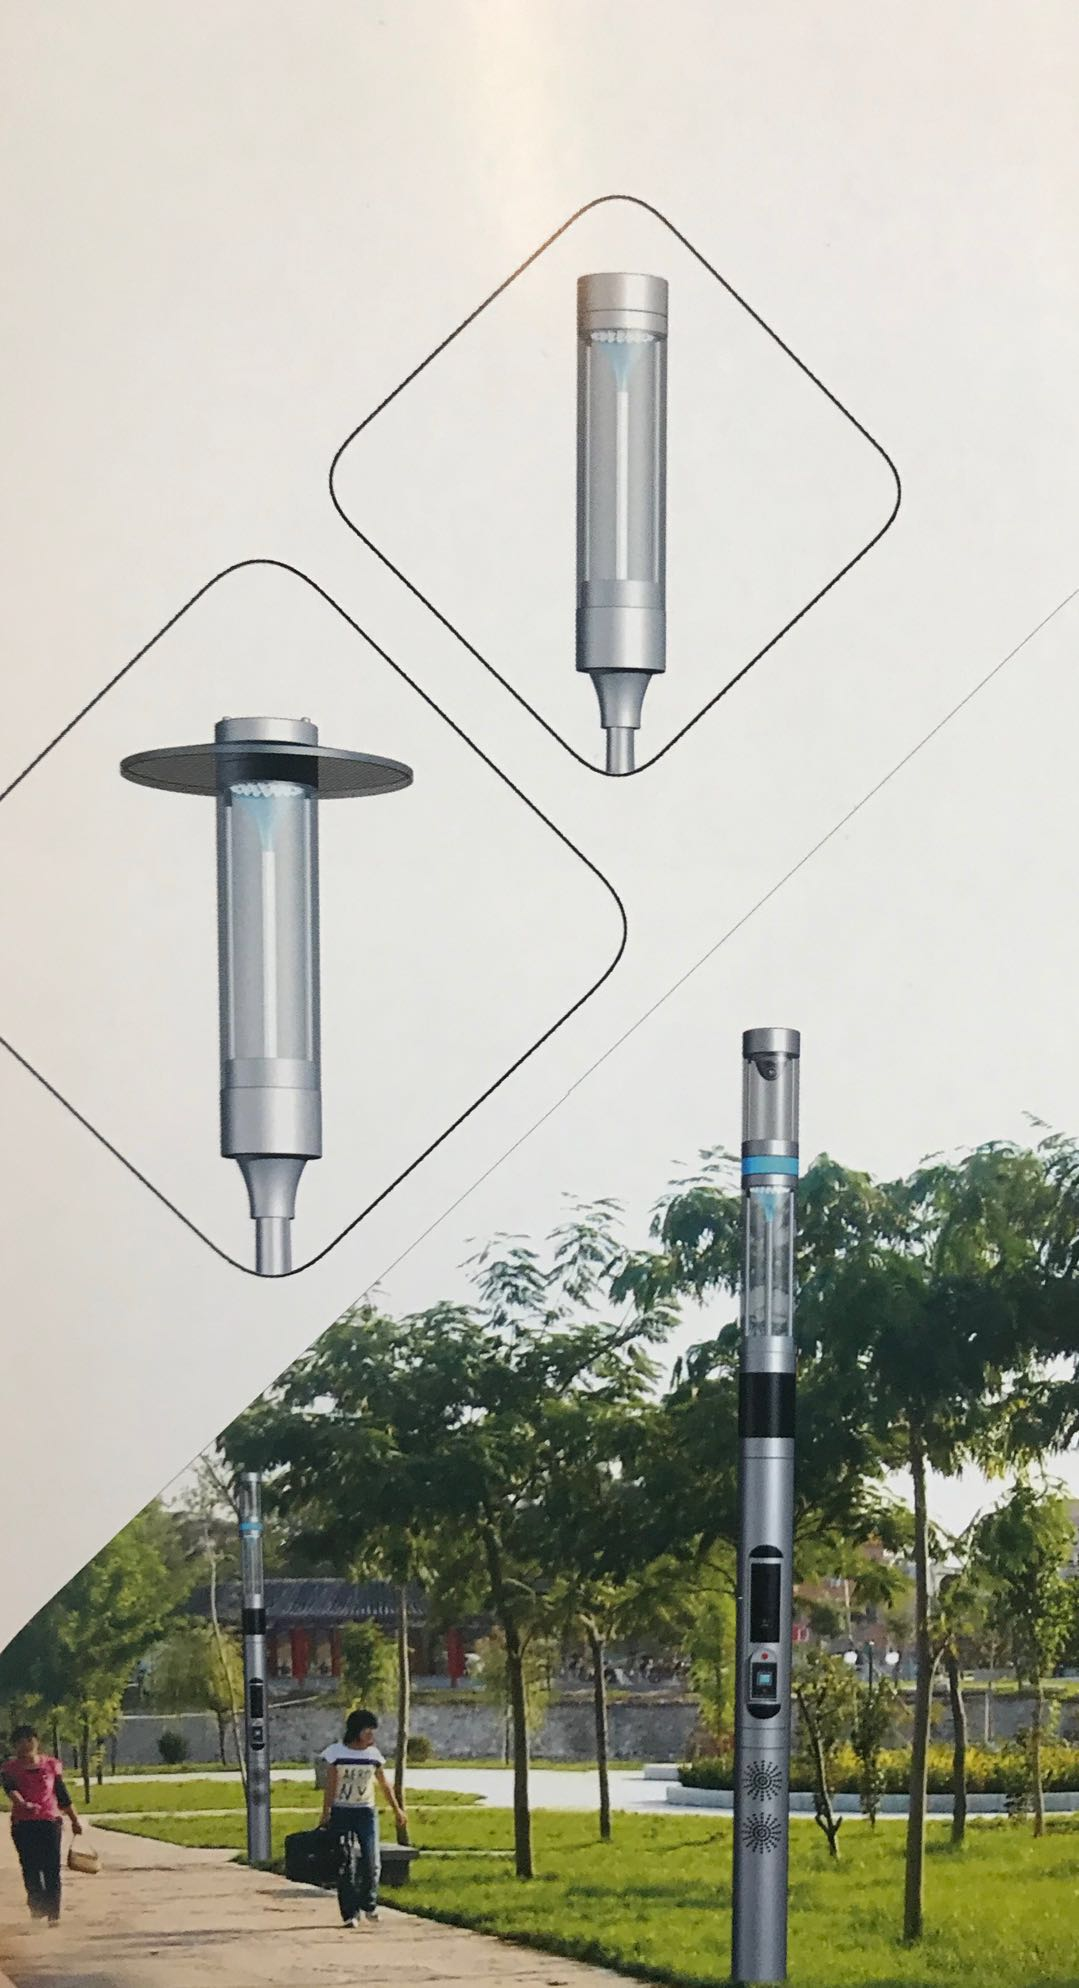 Cylindrical Intelligent street lamp